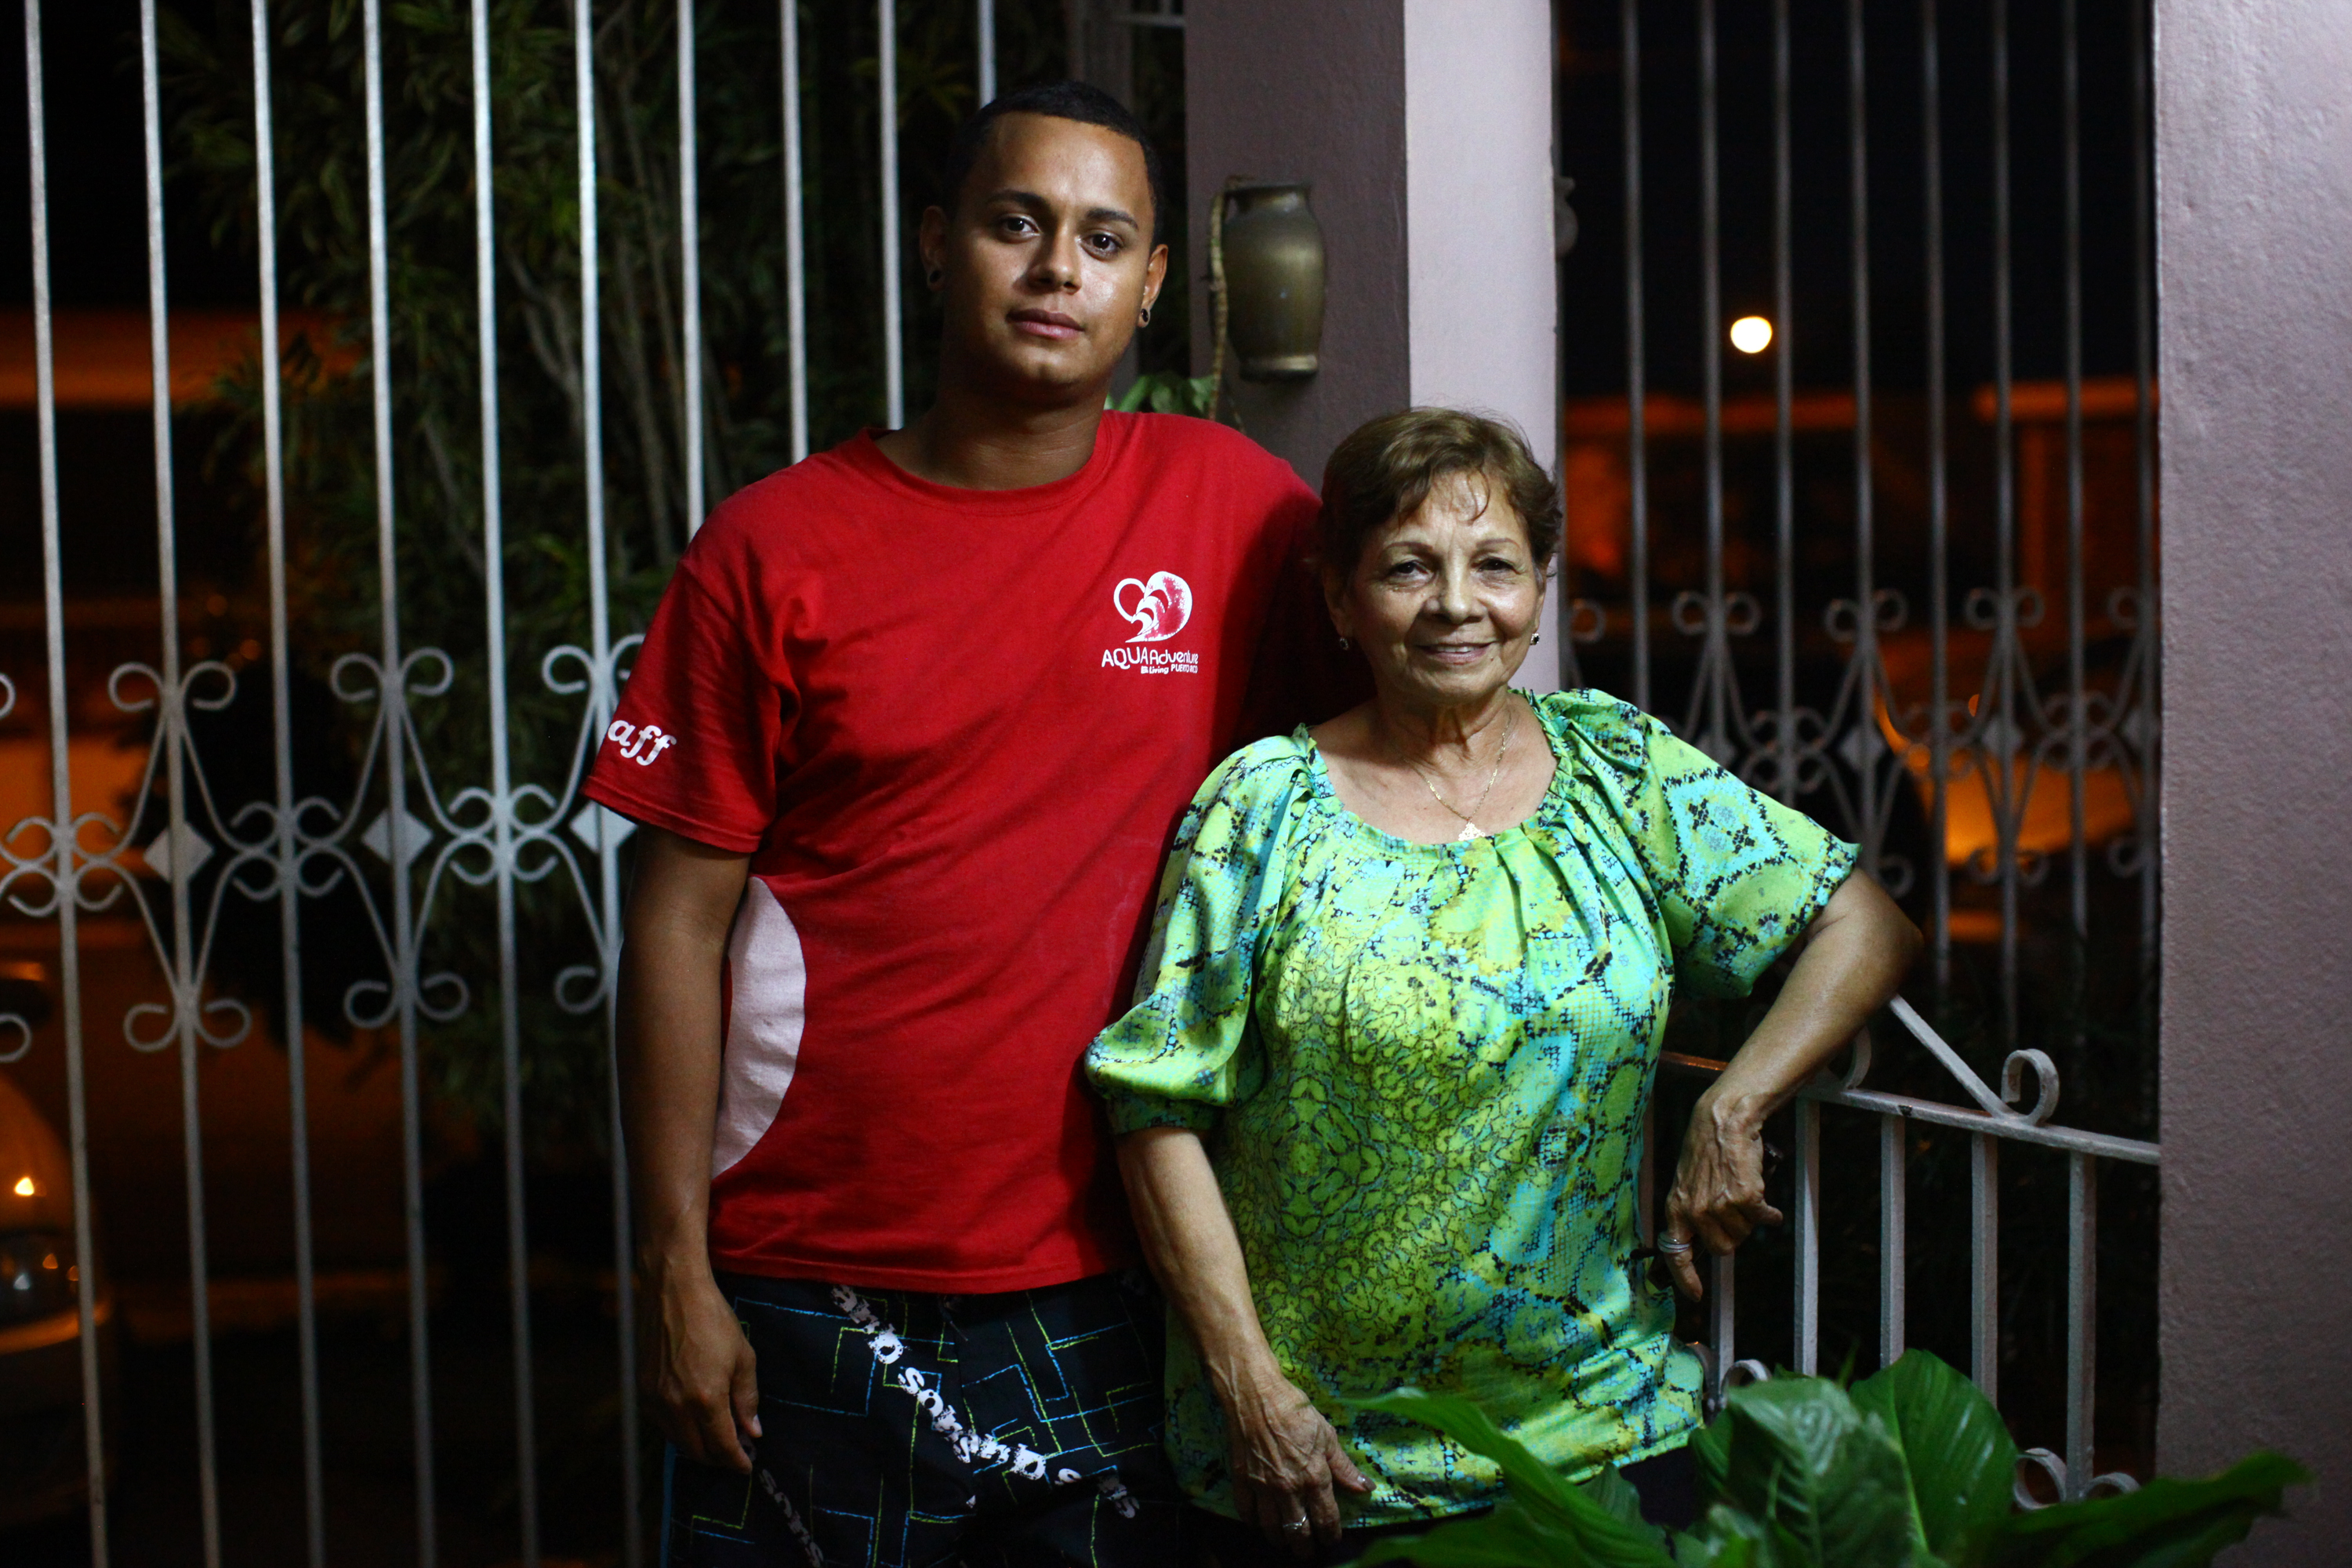 Bonet and Camacho say they prefer their life on the island to life on the mainland.